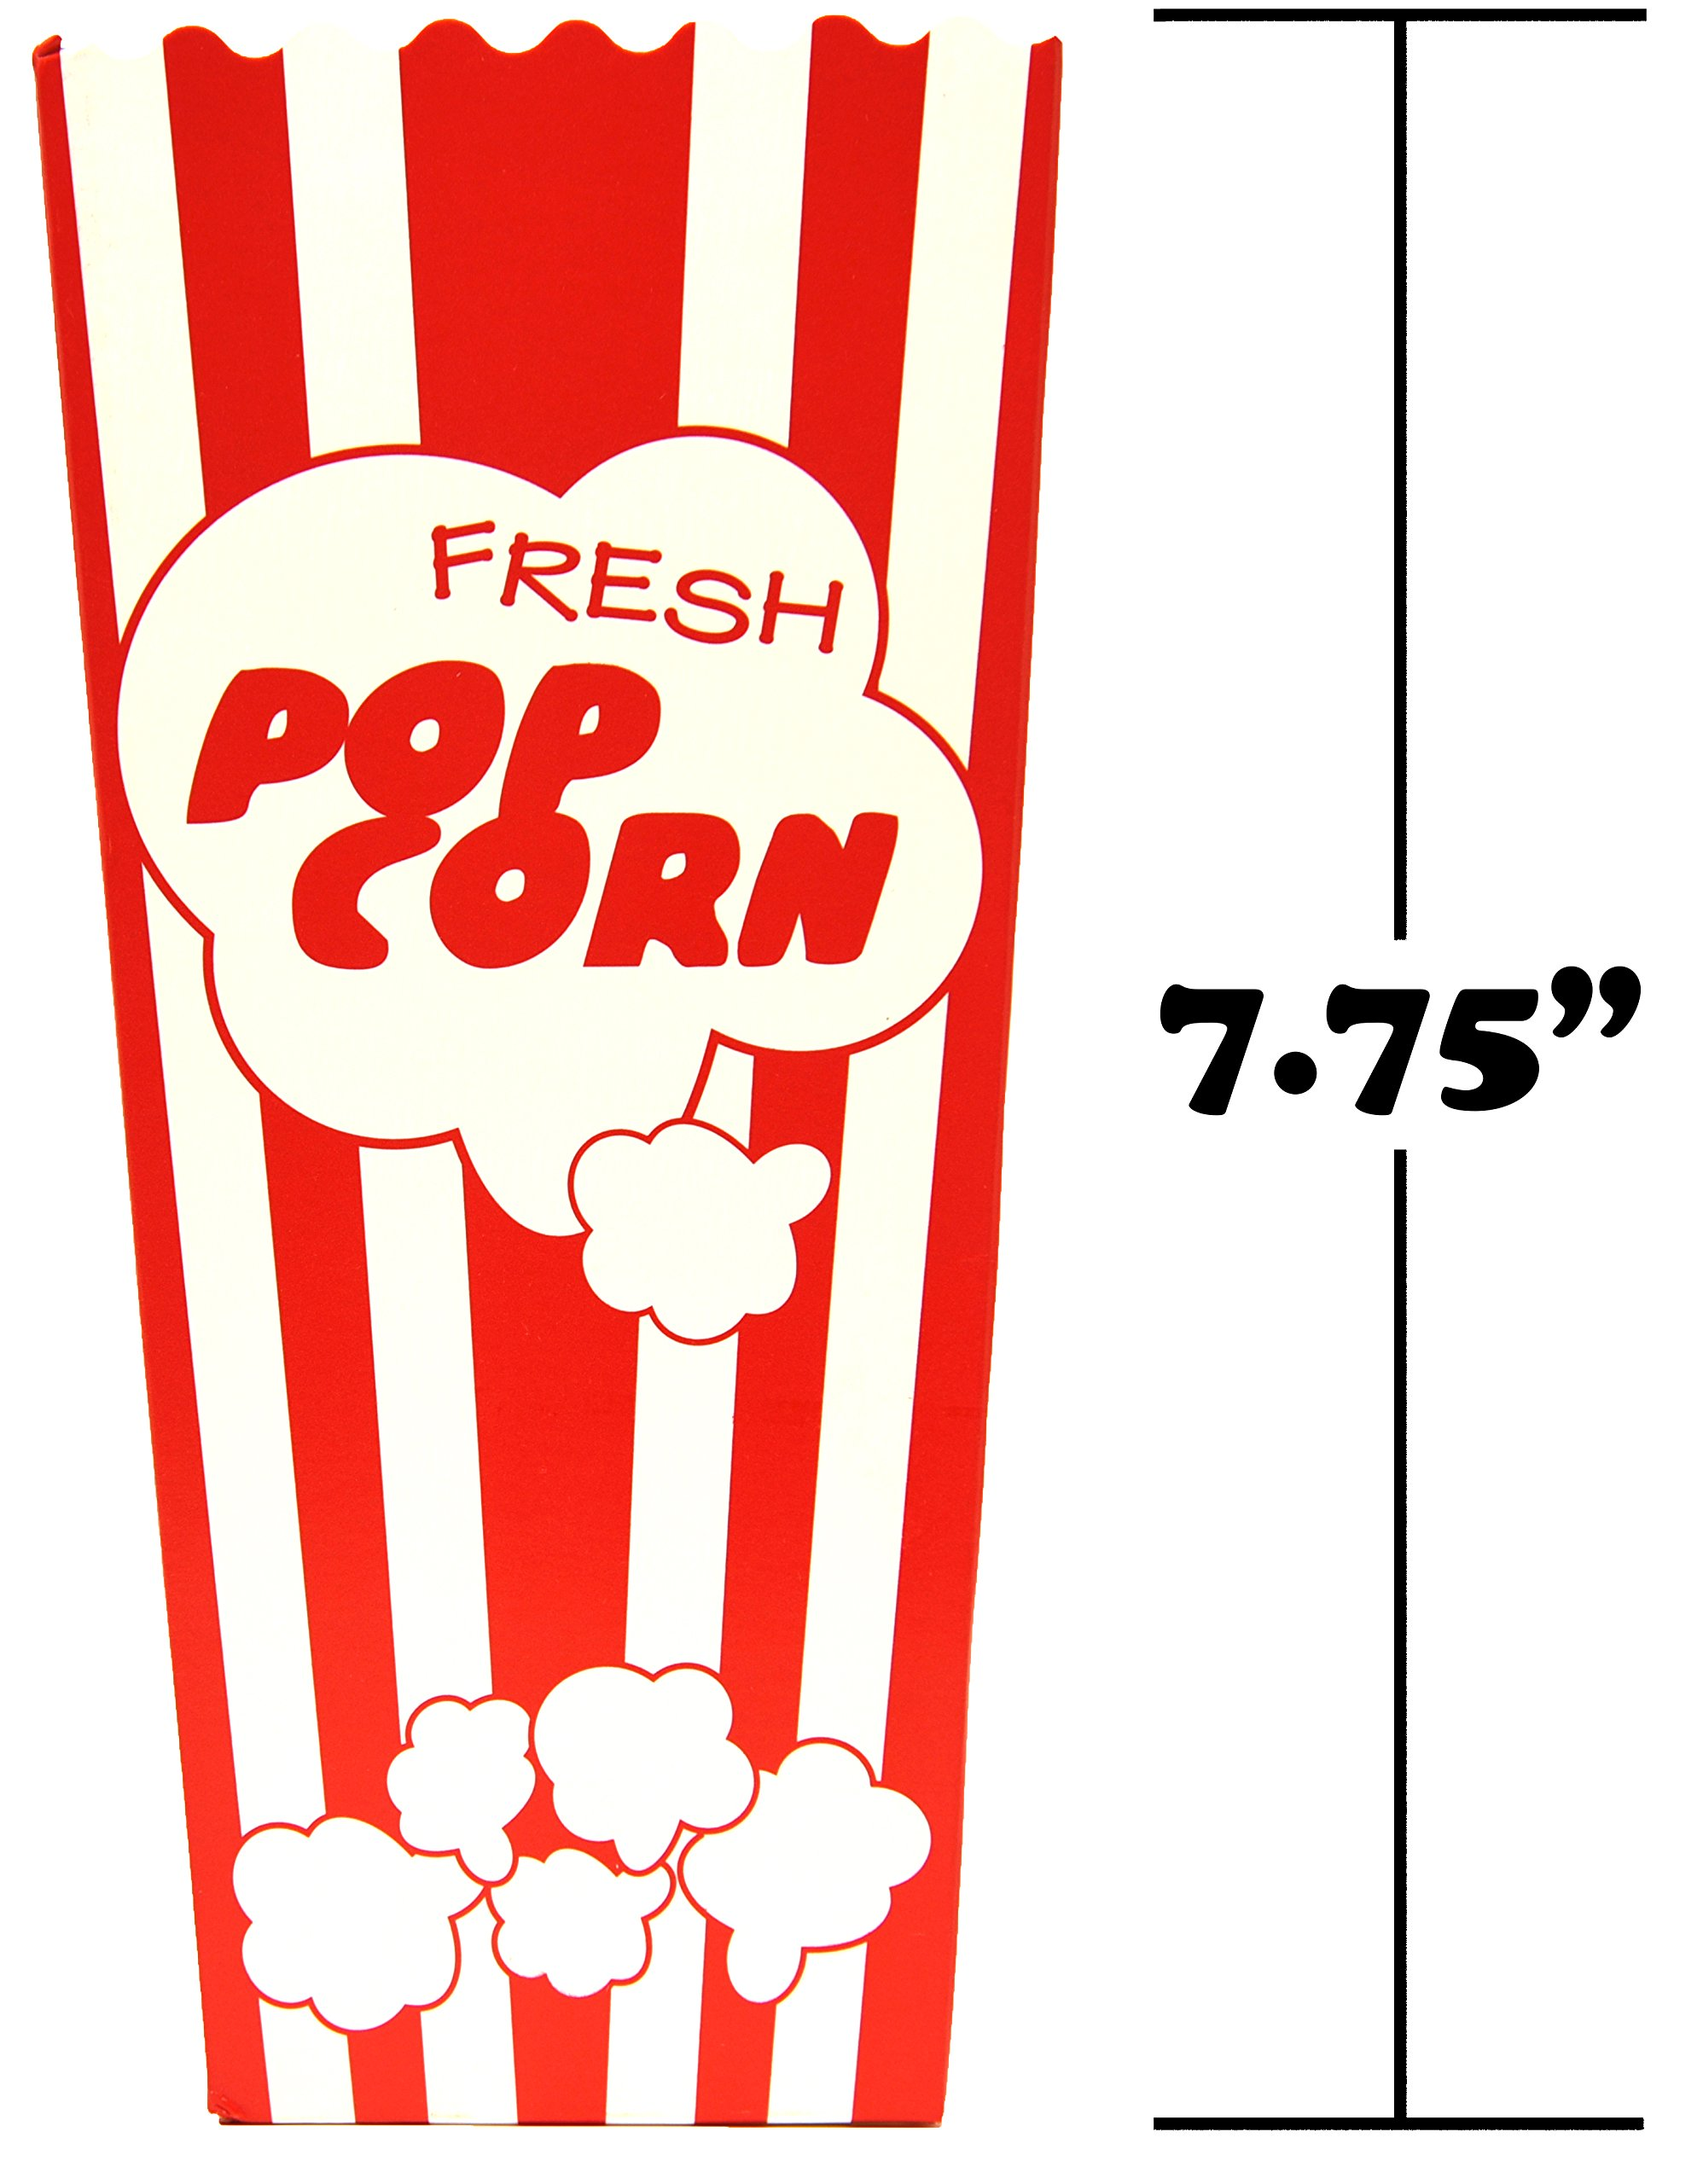 60 Individual Disposable Popcorn Boxes with Old Fashion Vintage Retro Design with Red and White Colored, Nostalgic Carnival Stripes, A Huge 7.75'' Inches Tall and Hold 46 Oz. by Original Salbree by Salbree (Image #3)